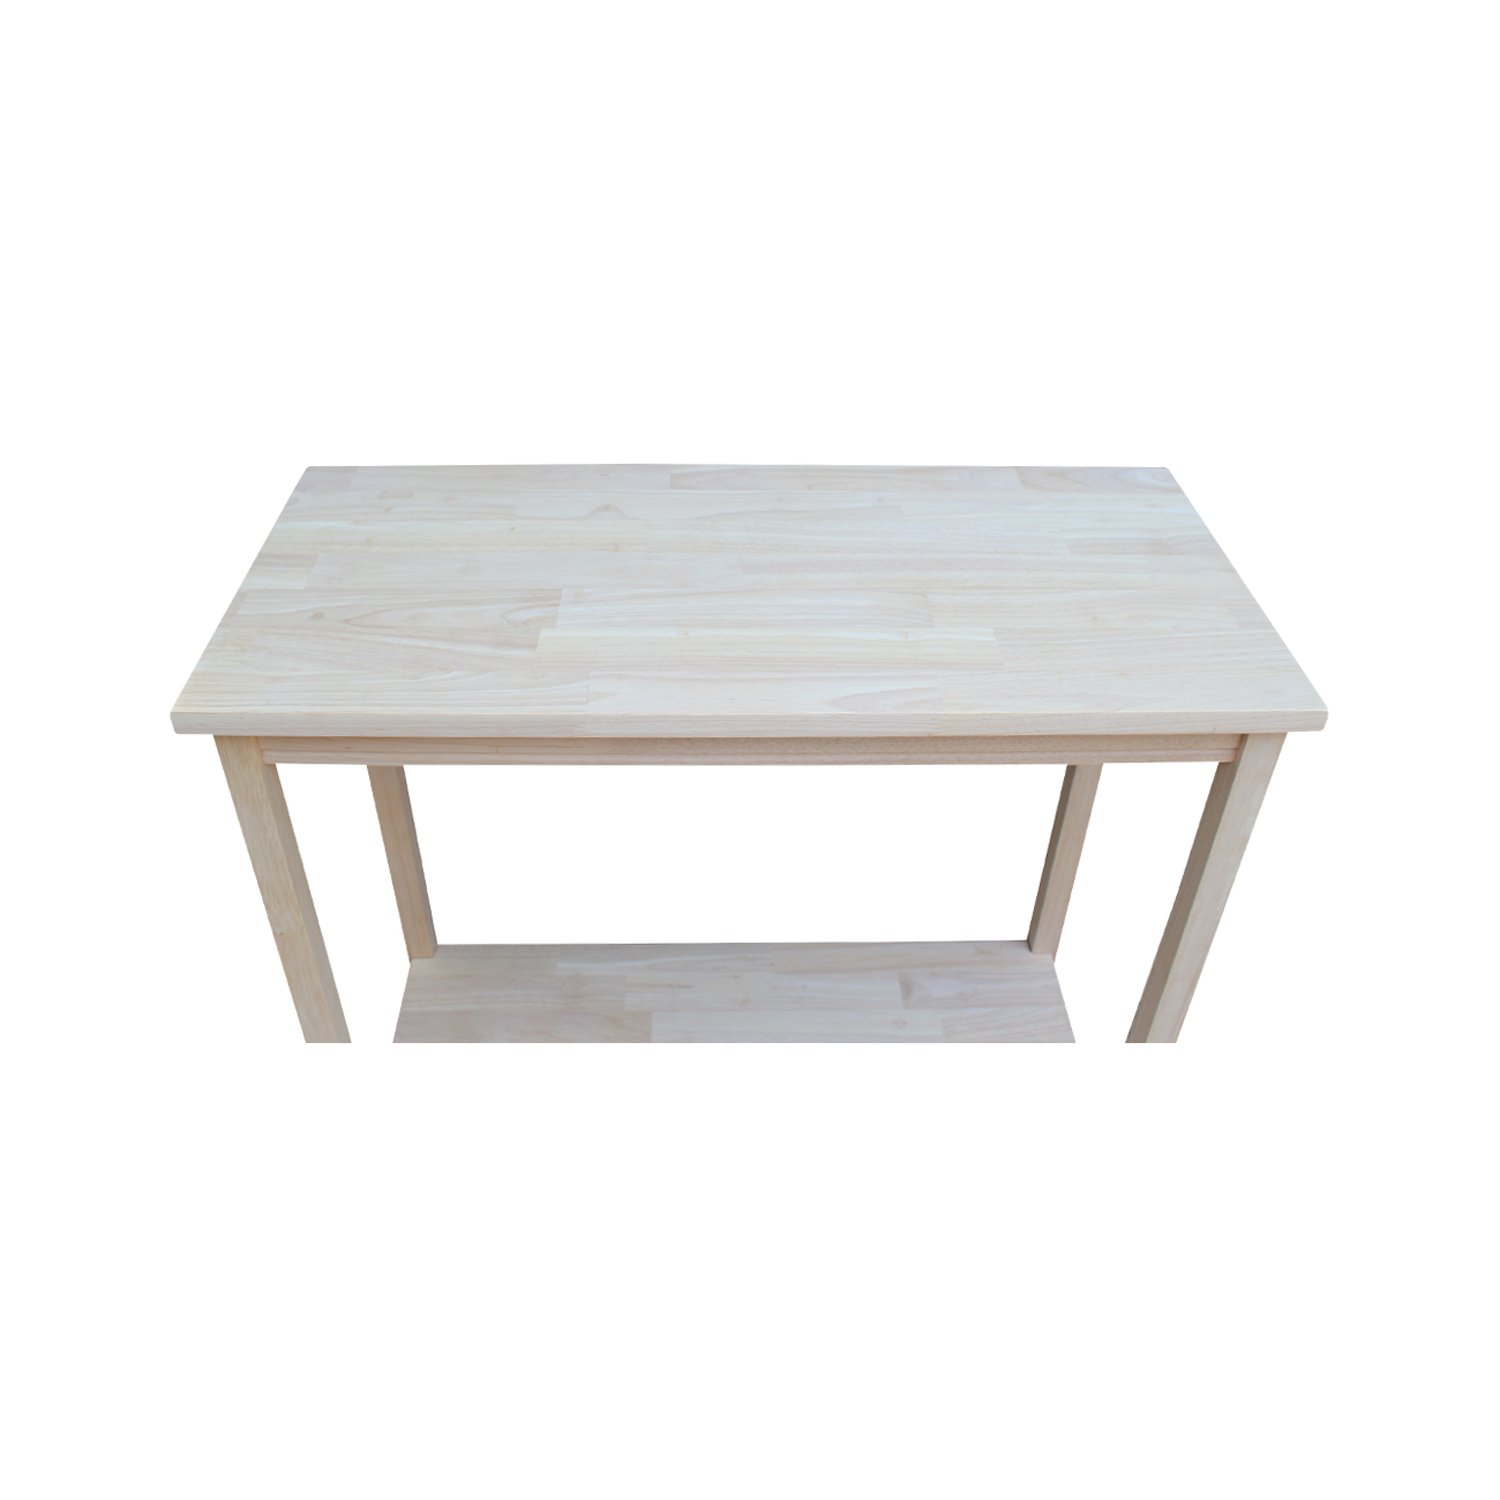 International Concepts OT-43 Accent Table, Unfinished by International Concepts (Image #7)